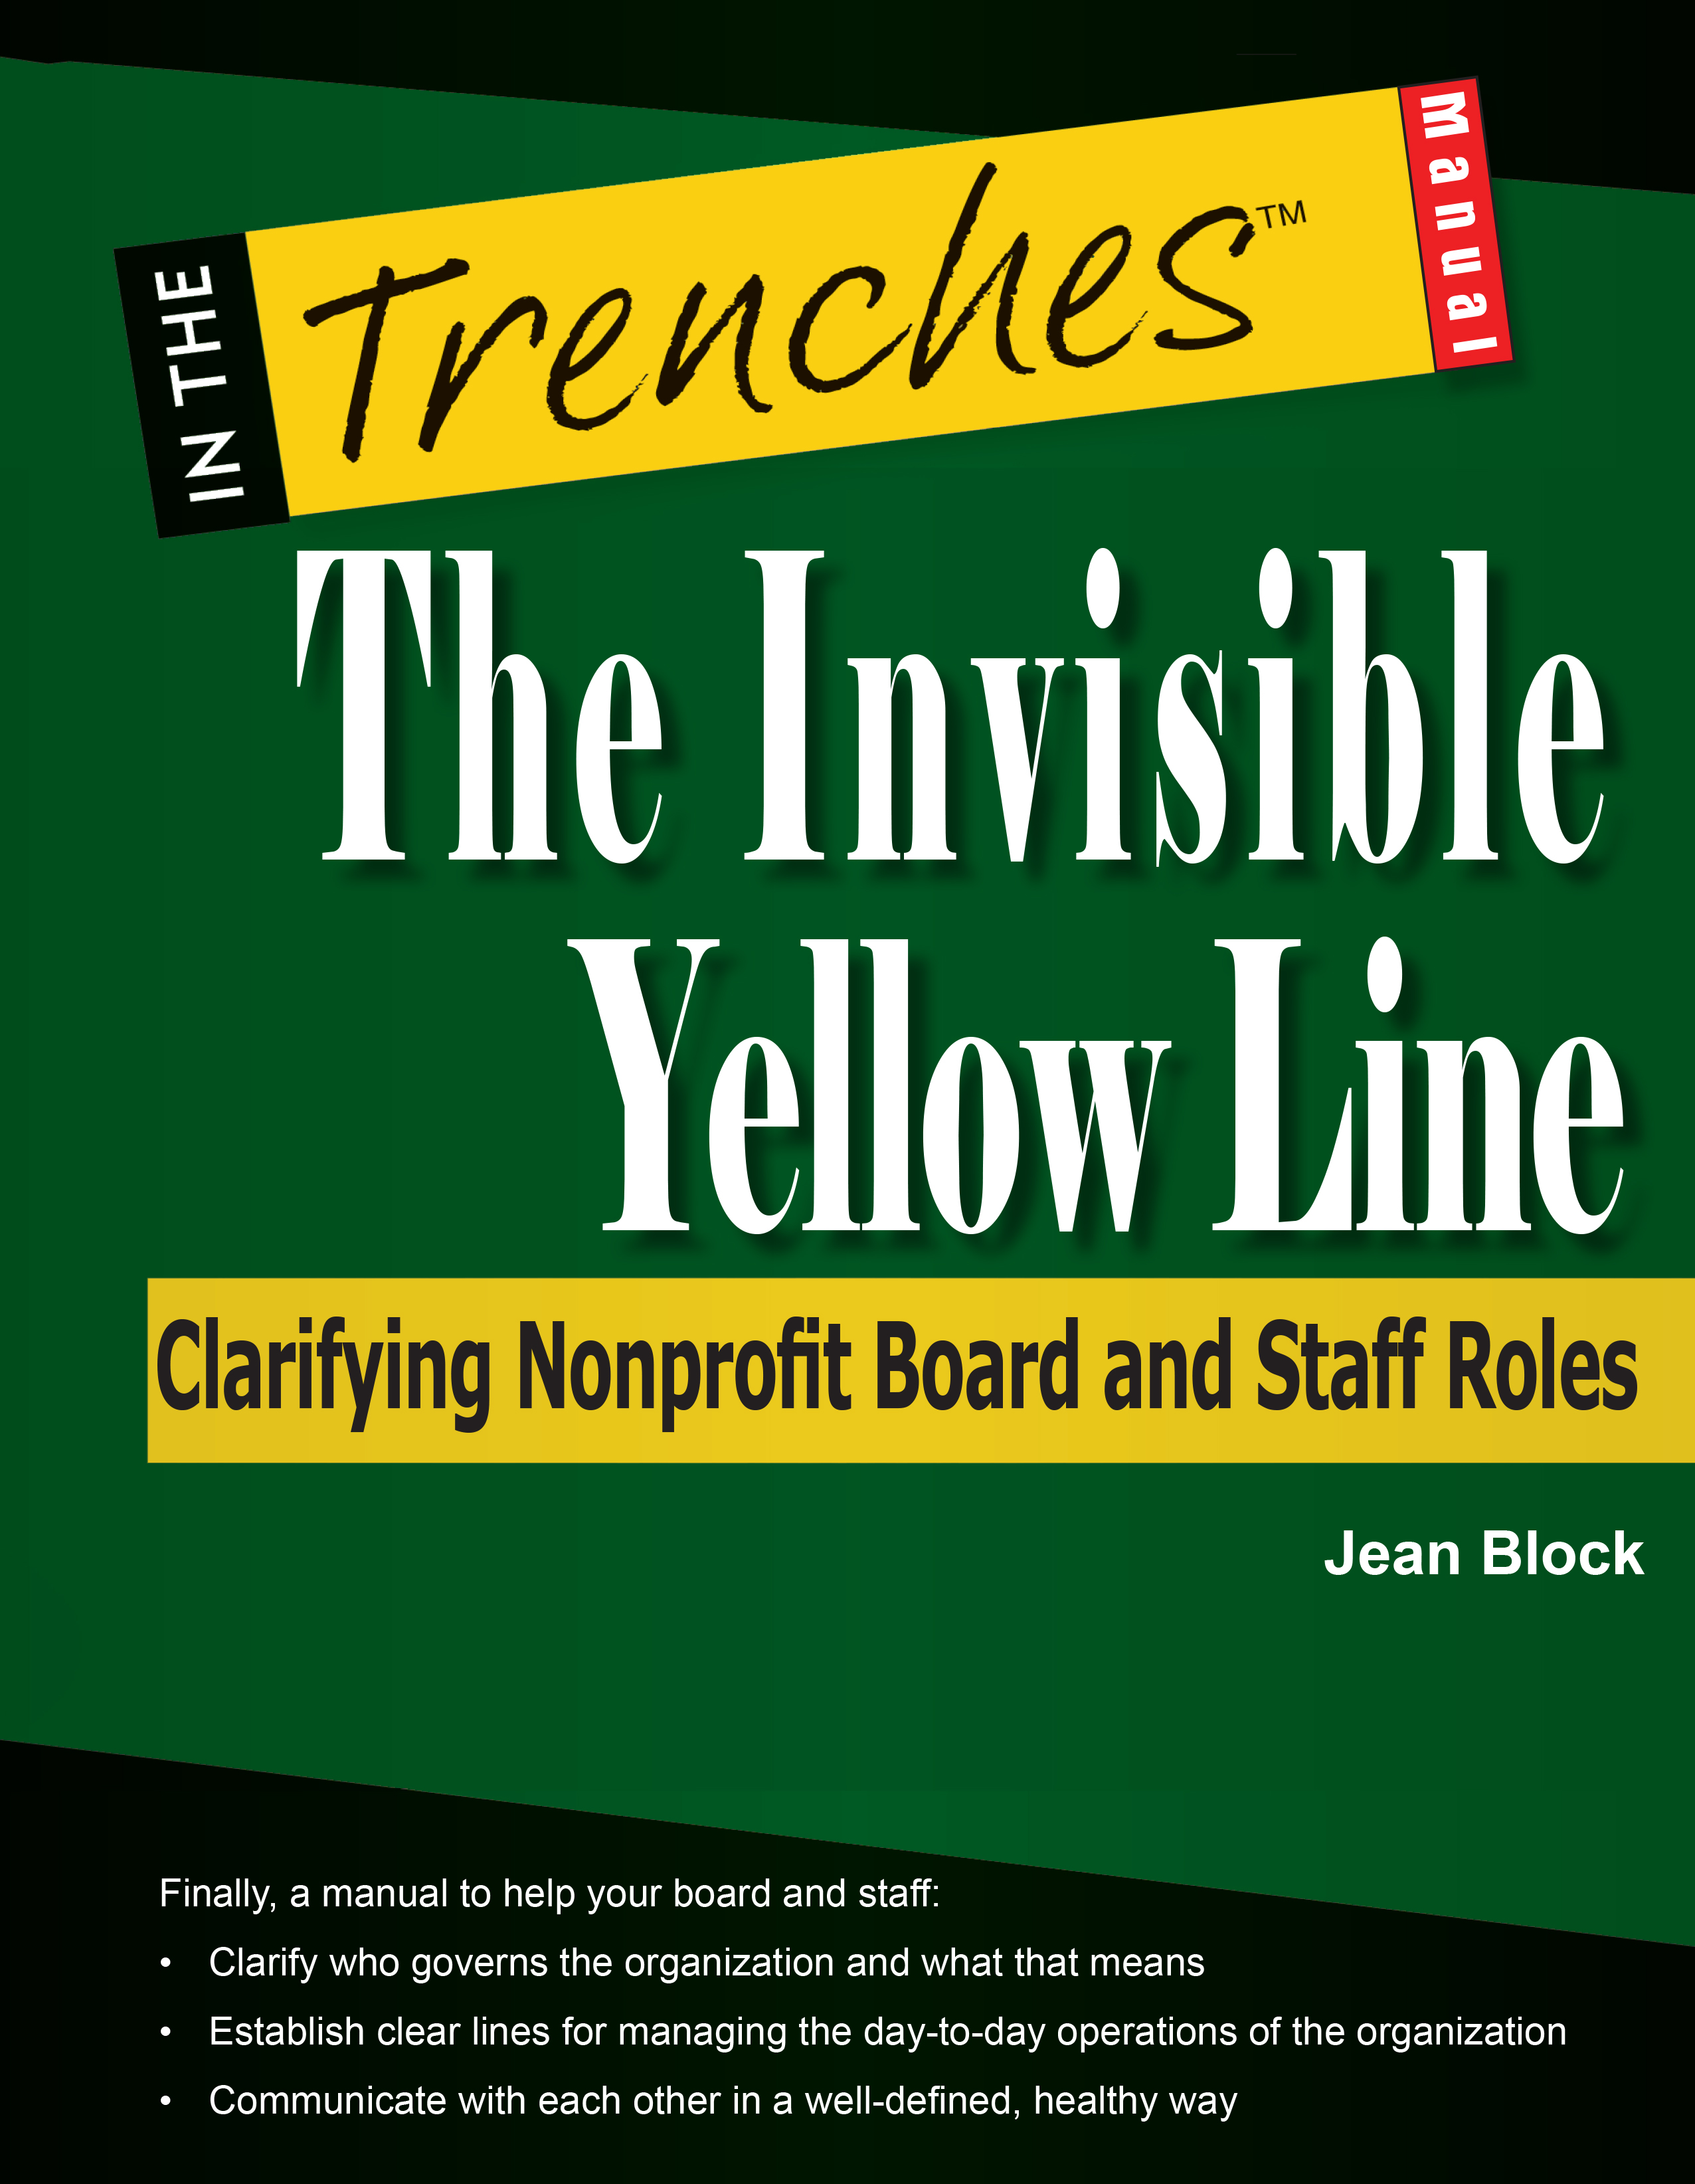 Clear up blurred lines of responsibility between nonprofit board and staff